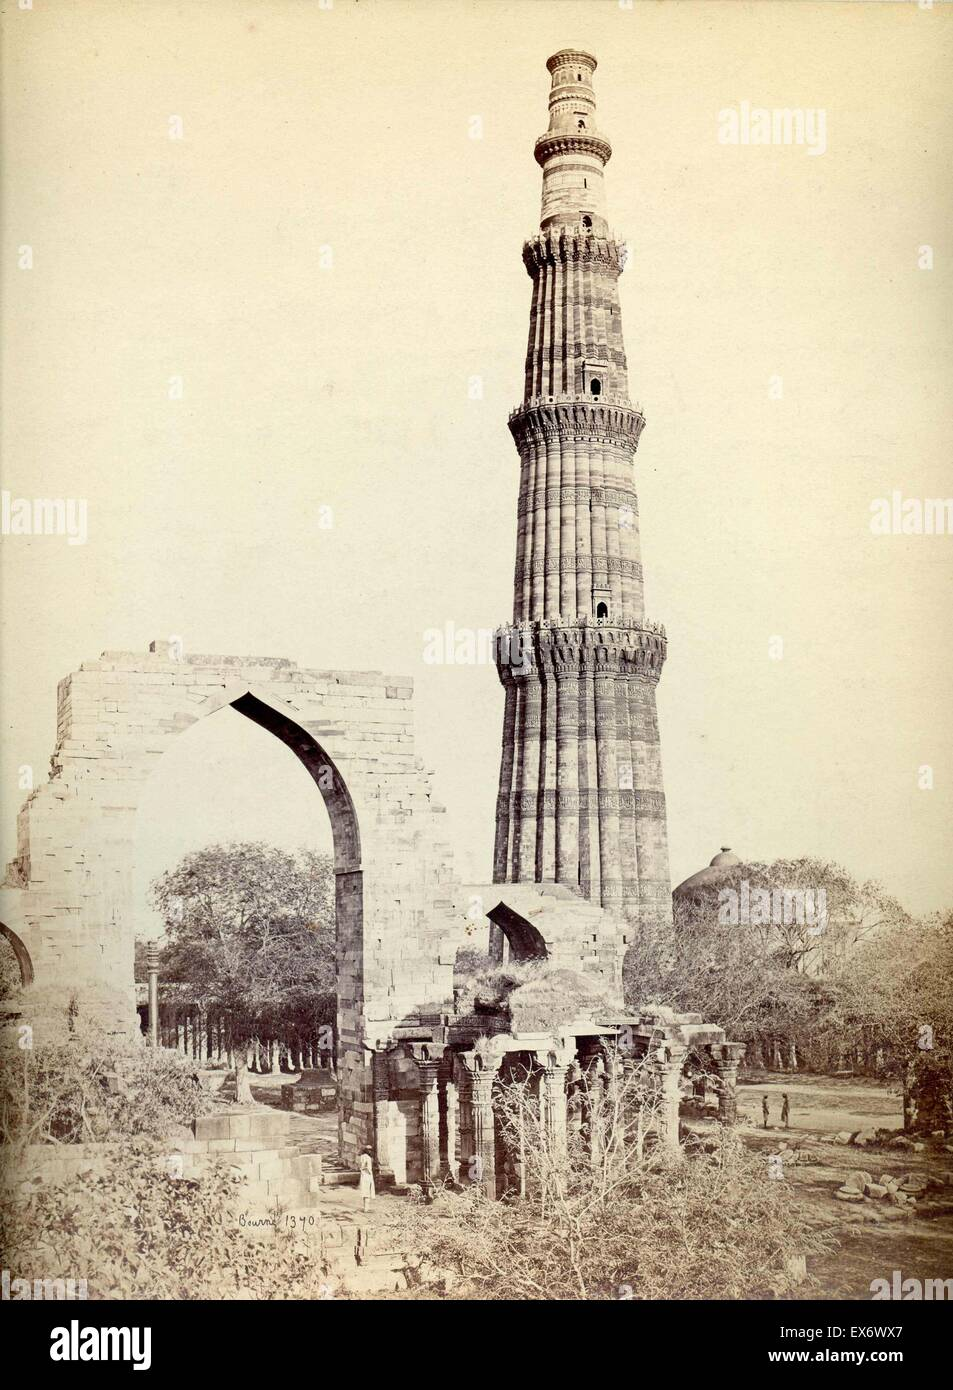 Qutb Minar in Delhi by Samuel Bourne (1834-1912). This fluted, red sandstone structure is the world's tallest - Stock Image